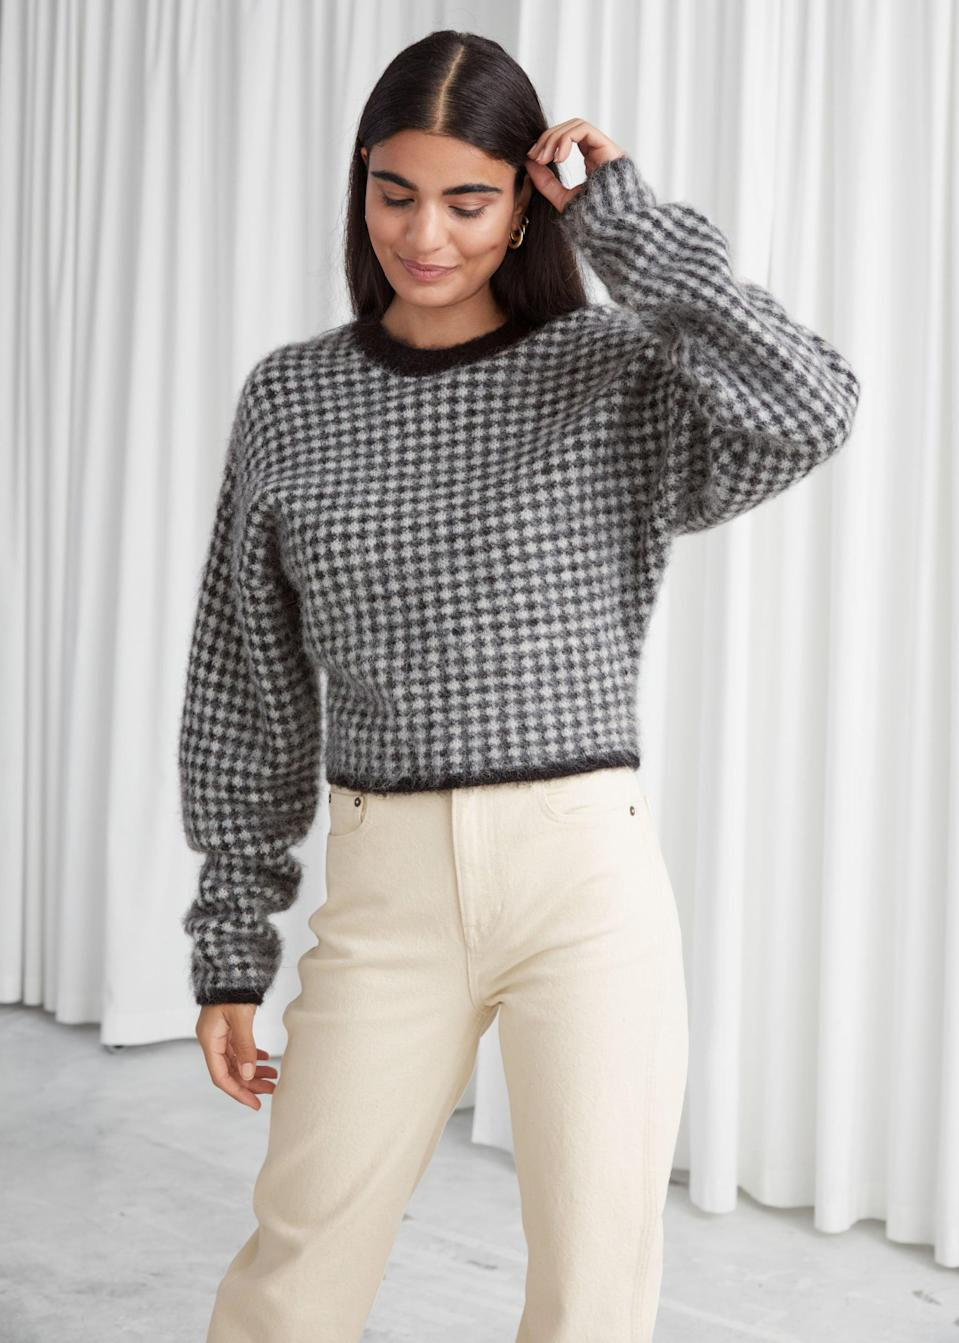 <p>You'll wear this <span>&amp; Other Stories Fuzzy Jacquard Knit Sweater</span> ($59, originally $99) all the time.</p>